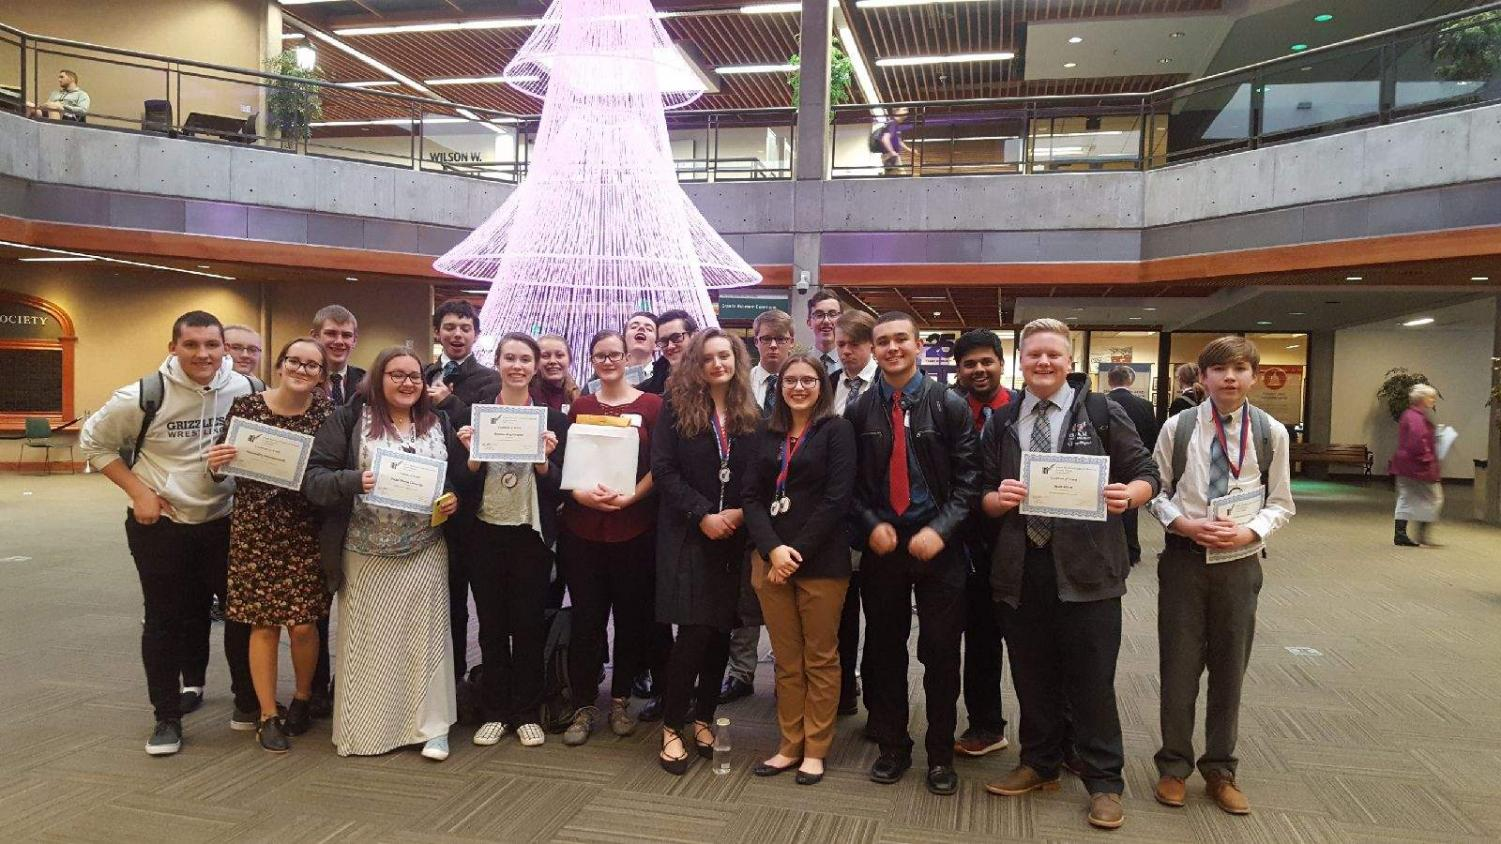 Business and Marketing members pose with their awards after the competition.